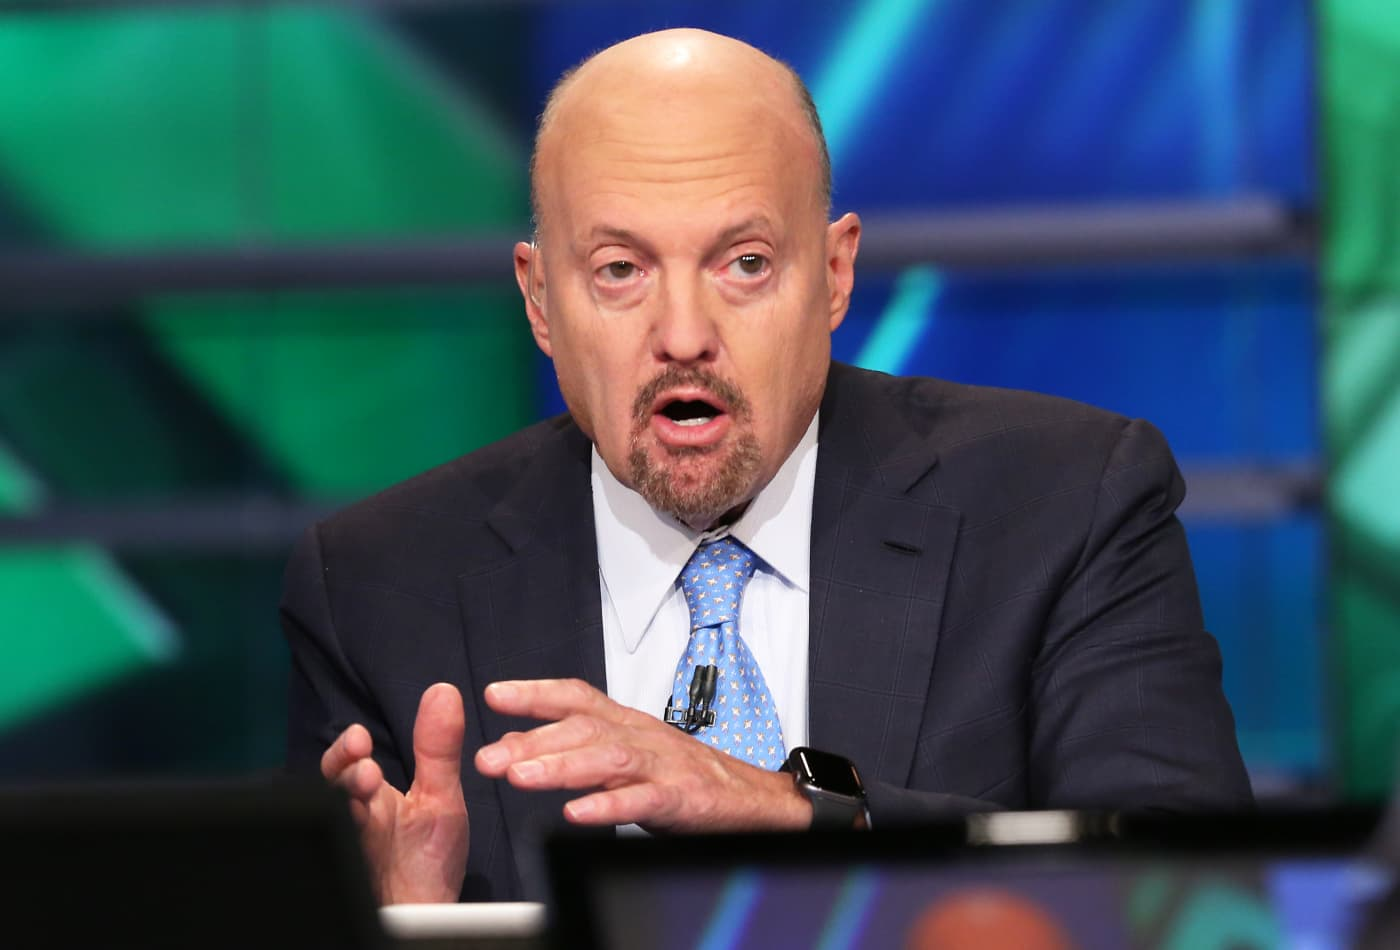 Cramer reacts to Cathie Wood's comments that tech pullback is unconcerning